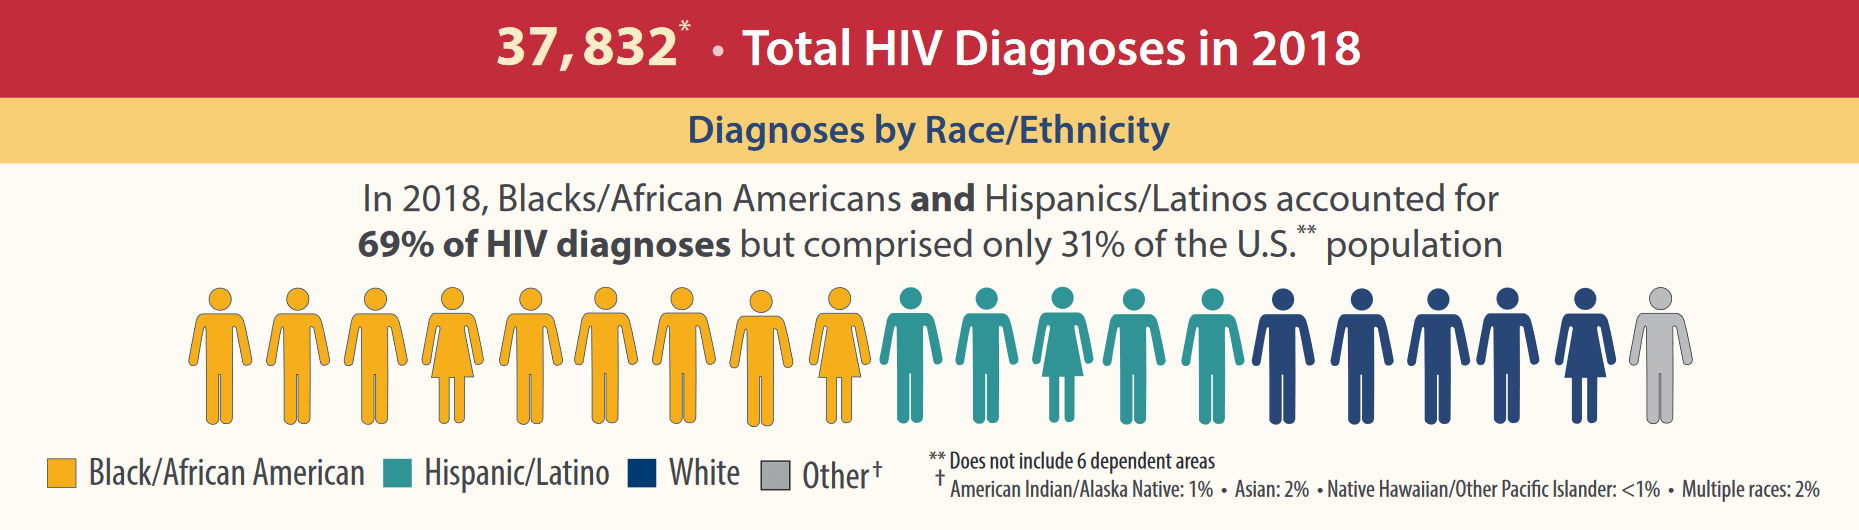 37,832 Total HIV Diagnoses in 2018. In 2018, Blacks/African Americans and Hispanics/Latinos accounted for 69% of HIV diagnoses butcomprised only 31% of the U.S. population.